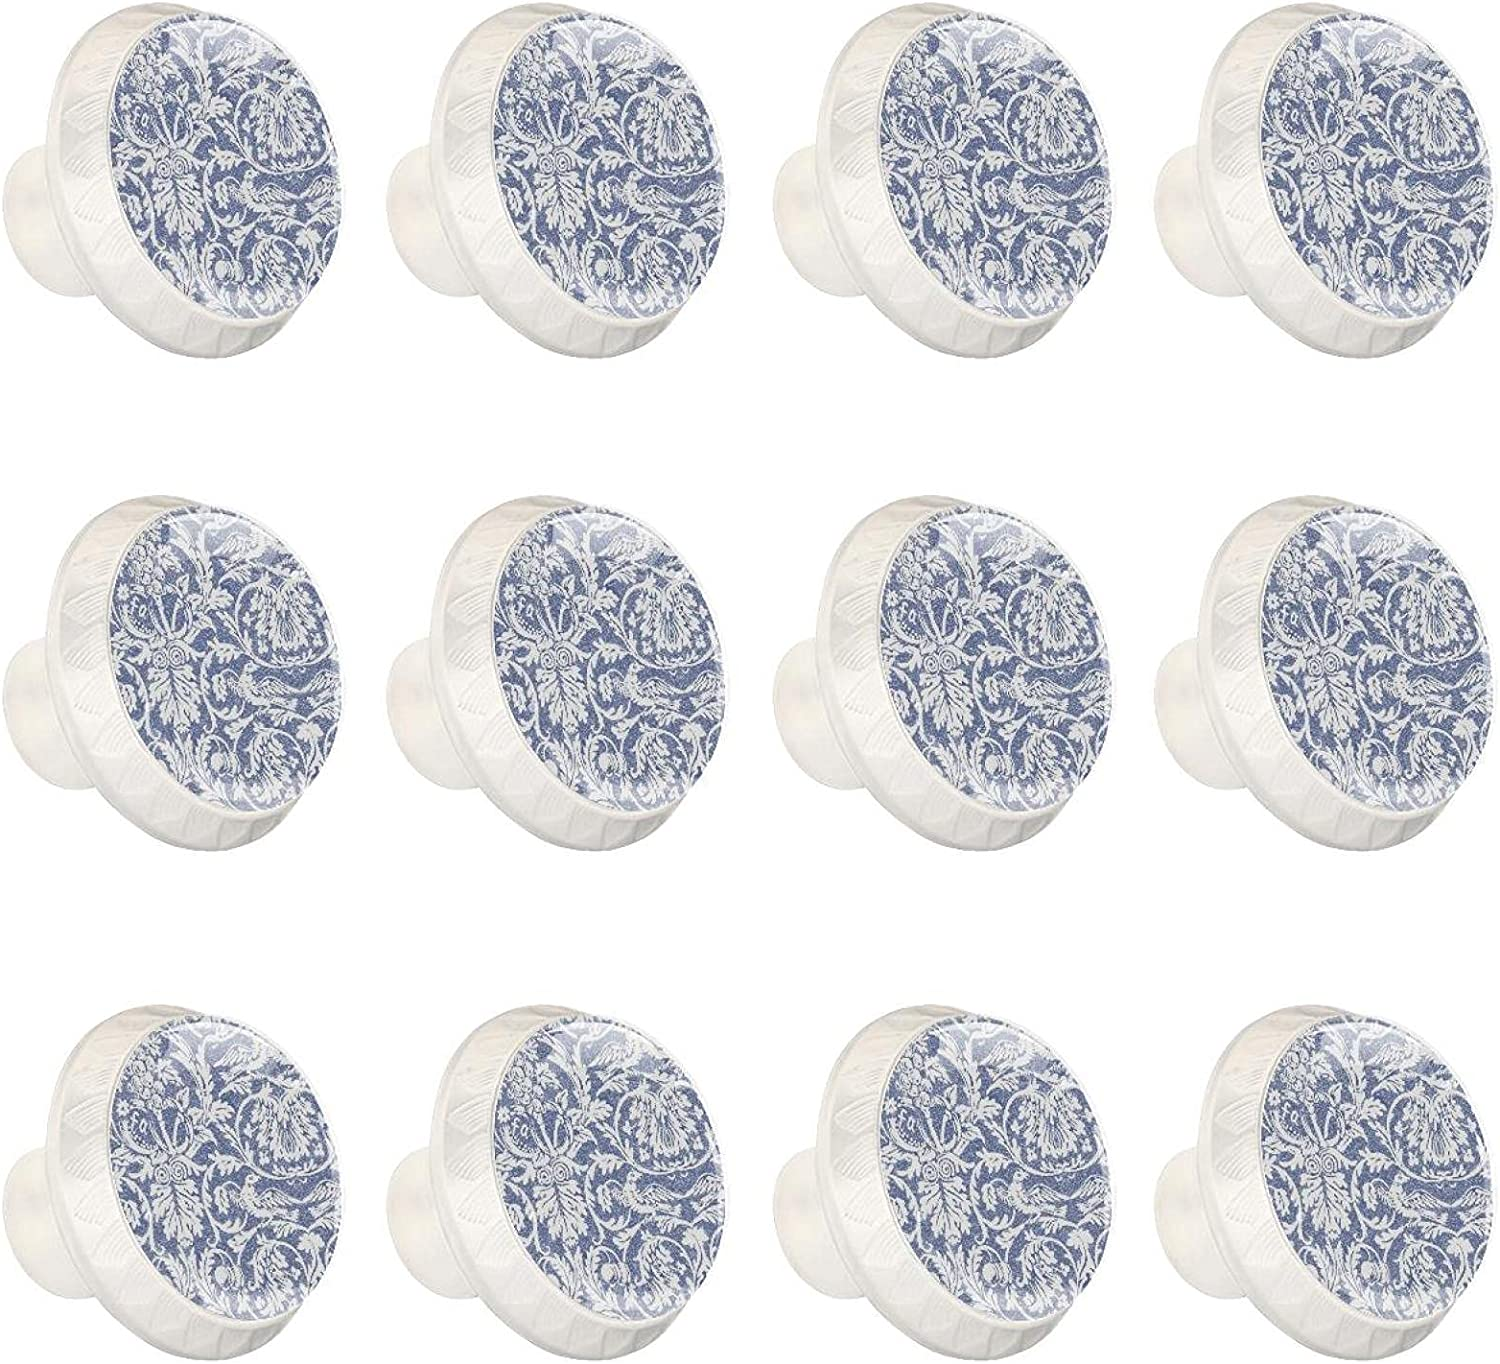 Athens Flowers Hardware Round Cupboard Handles Ranking TOP20 free shipping Knobs Bedroo Pull